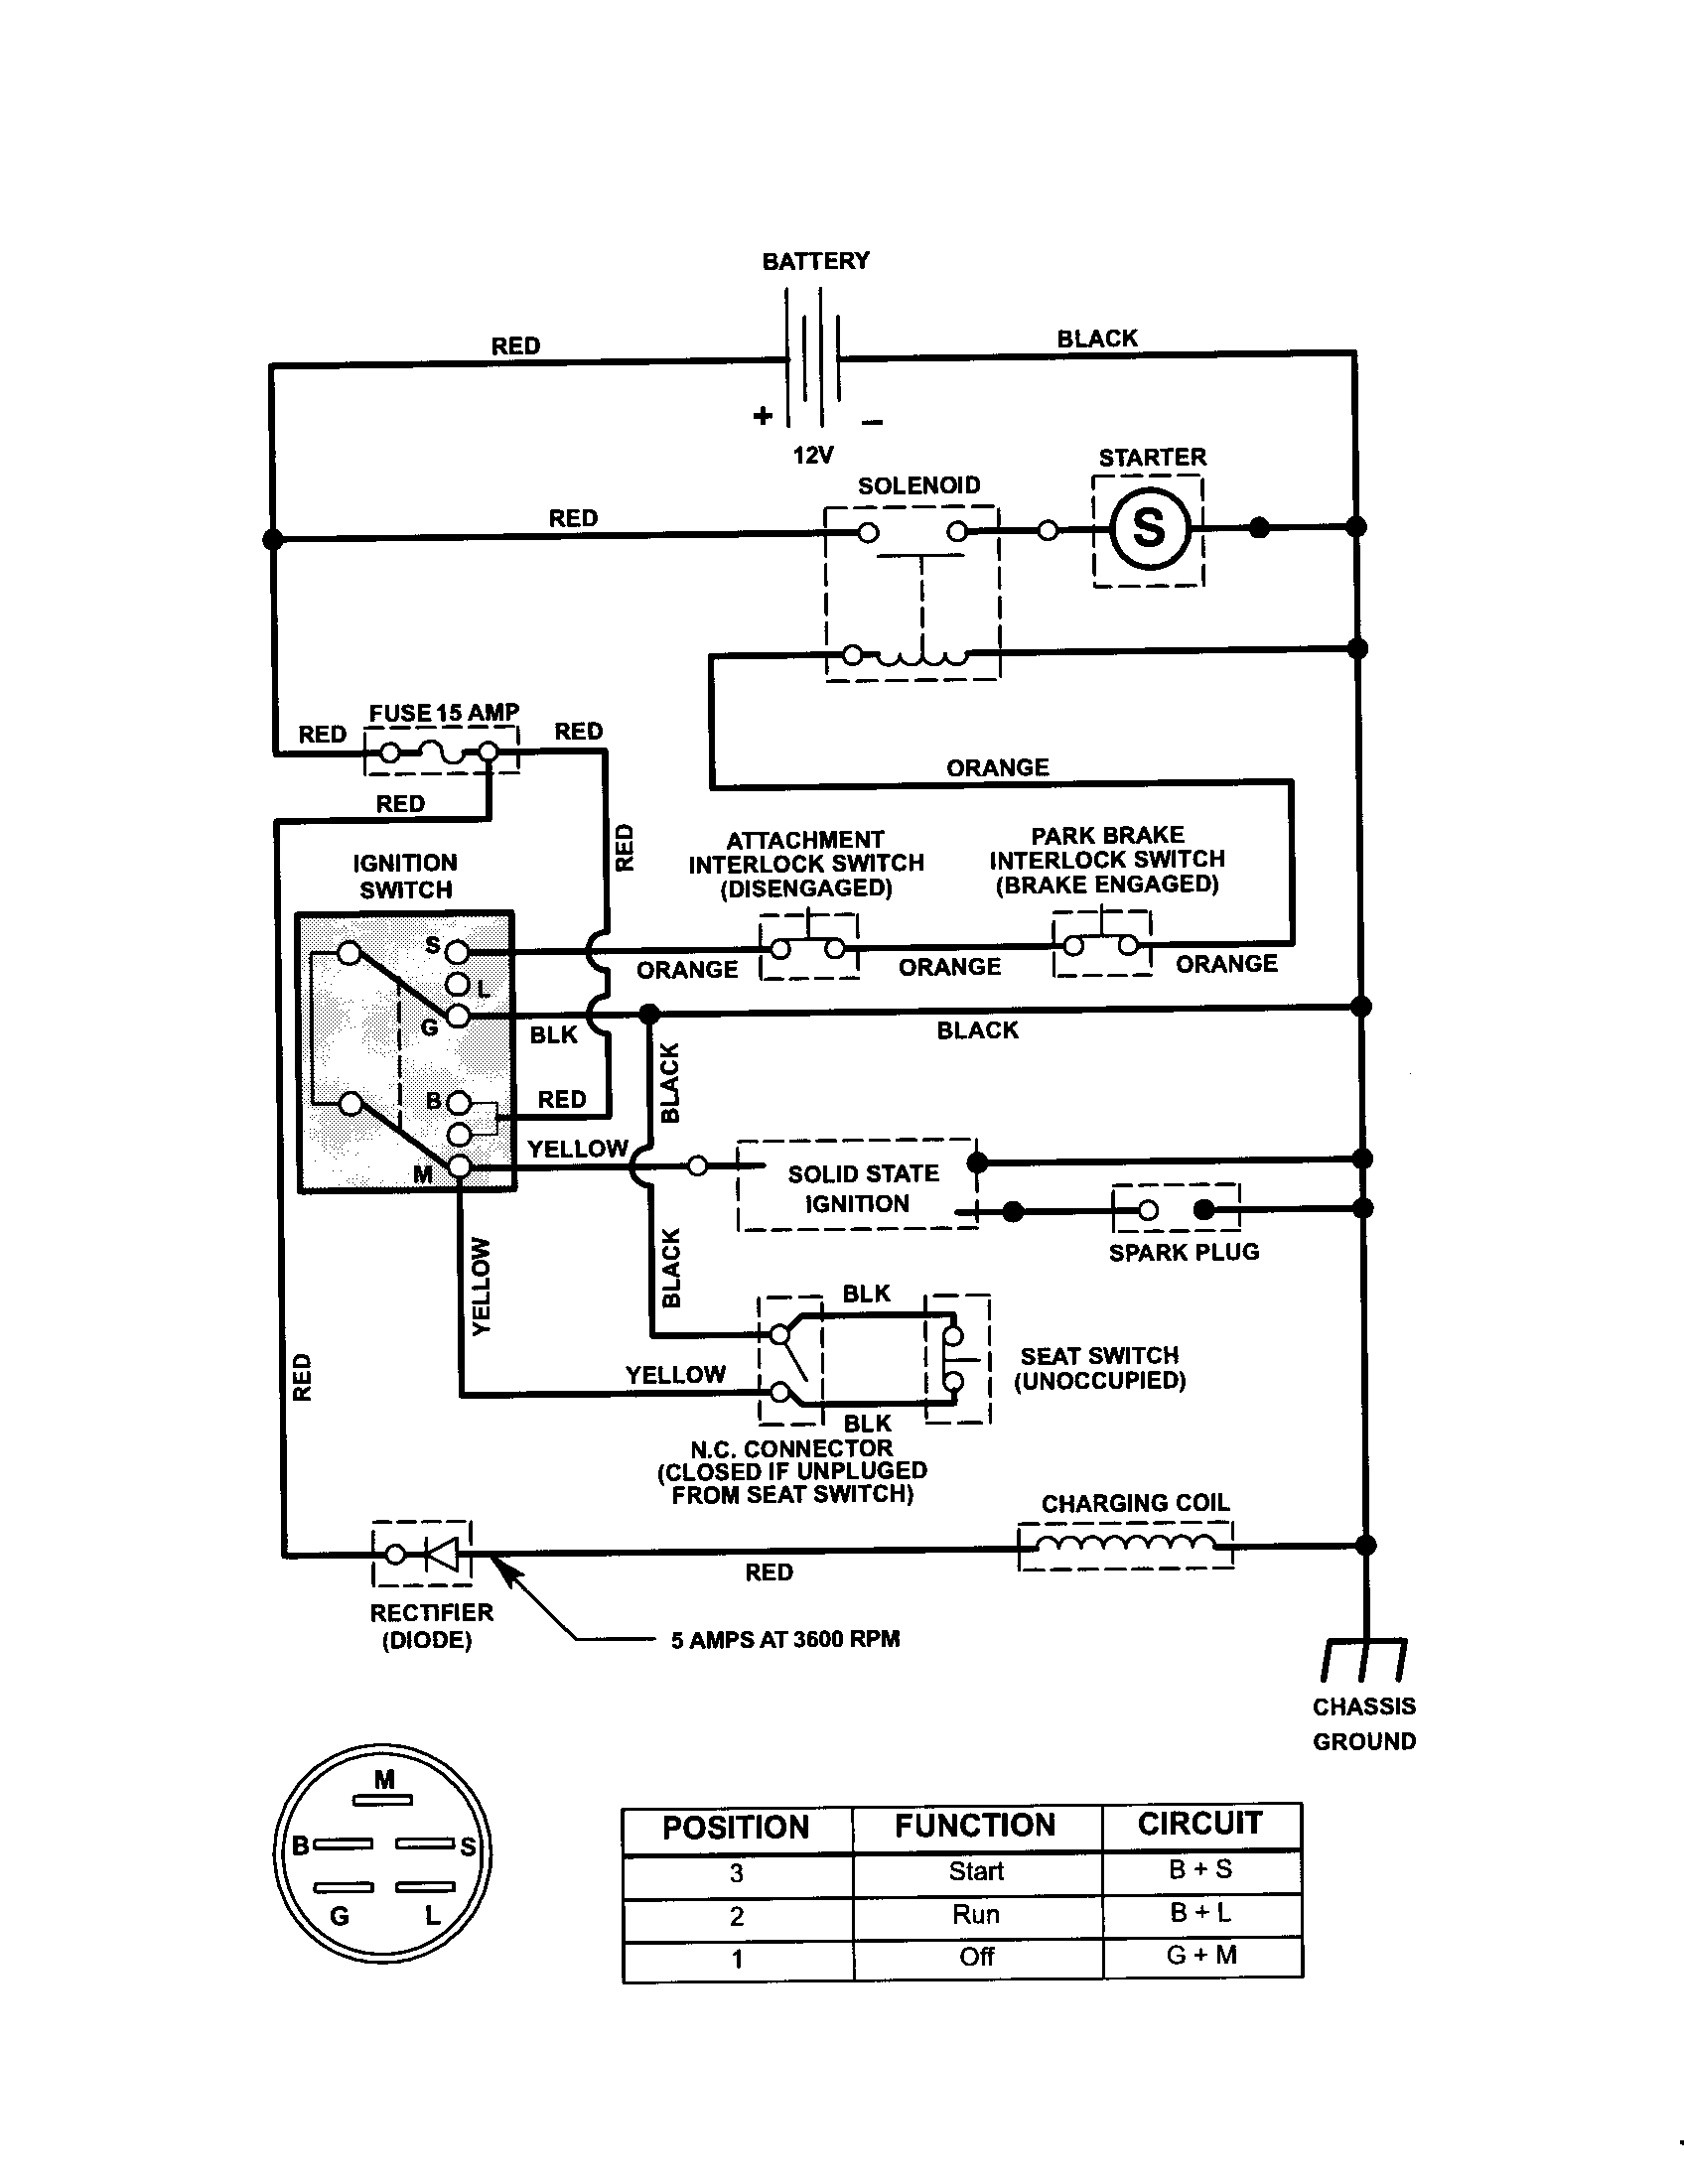 1b4fc64e2bcb7b381848942ff5c84dce craftsman riding mower electrical diagram pictures of craftsman craftsman lawn mower wiring harness at crackthecode.co